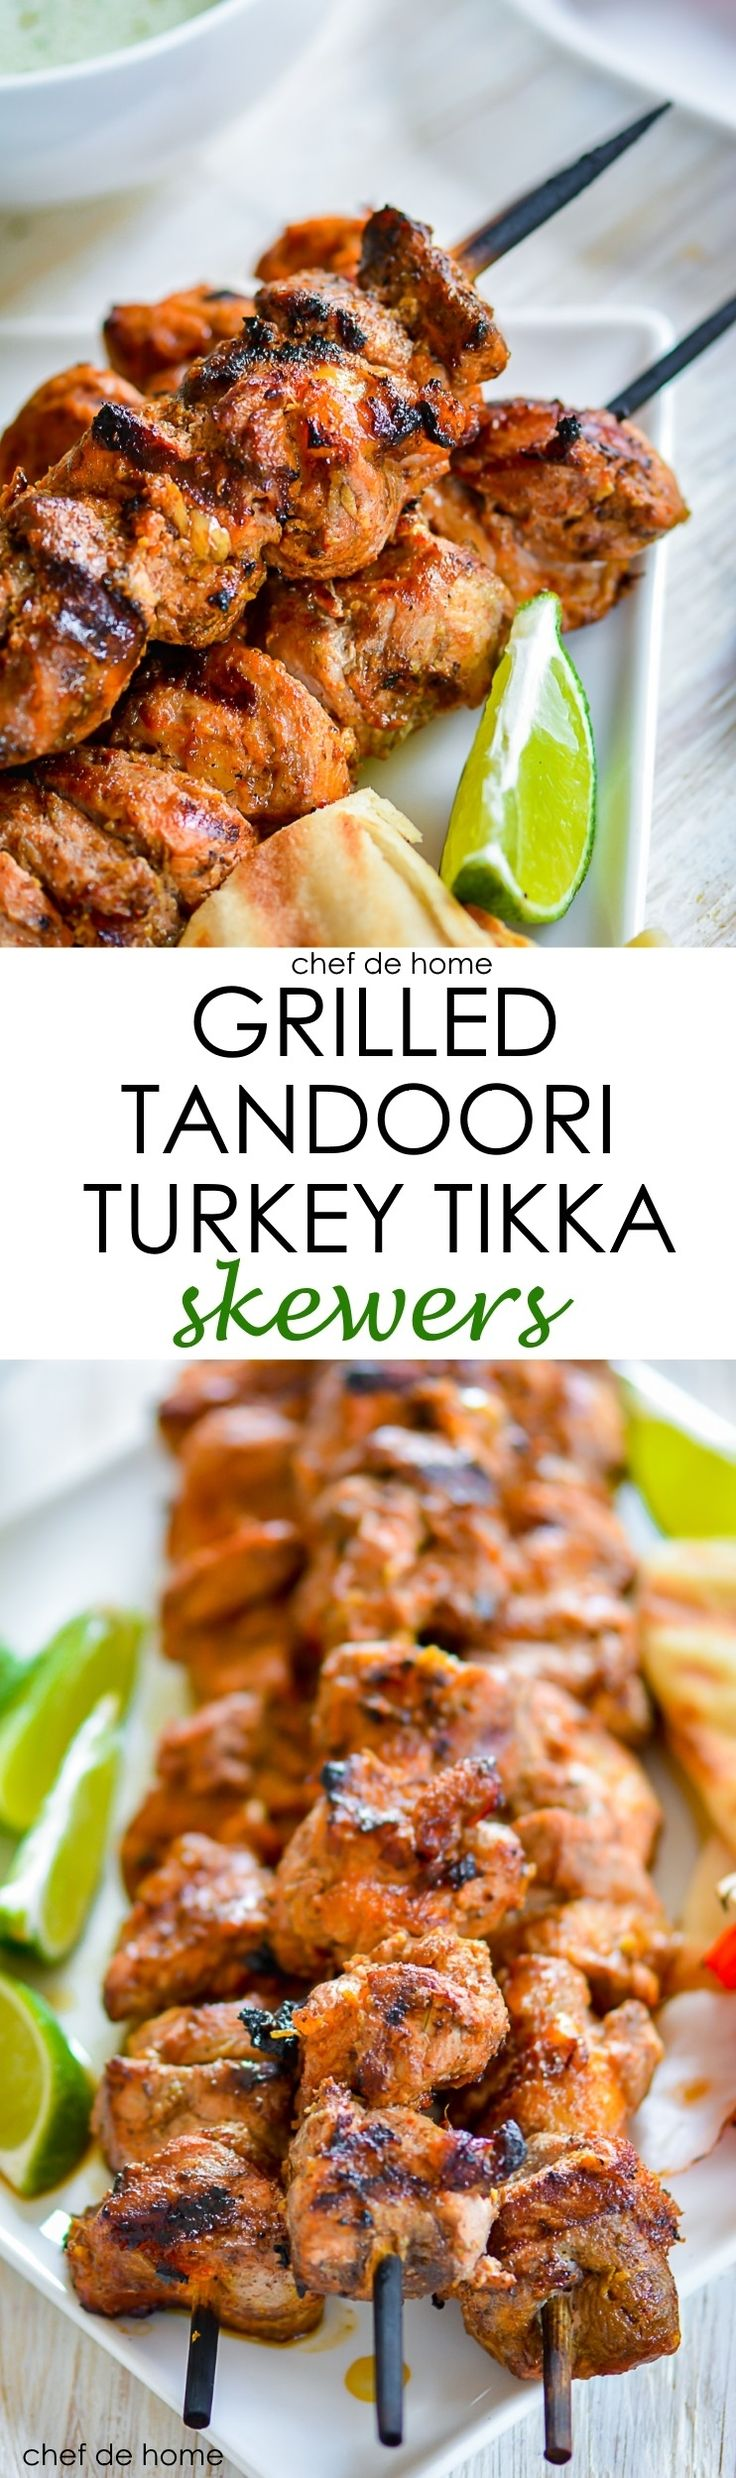 Grilled Tandoori Turkey Tikka Skewers @ServeTurkey A re-take on classic Chicken Tikka with a delicious and lean protein - Turkey, served with side of cooling mint-yogurt sauce! #ad